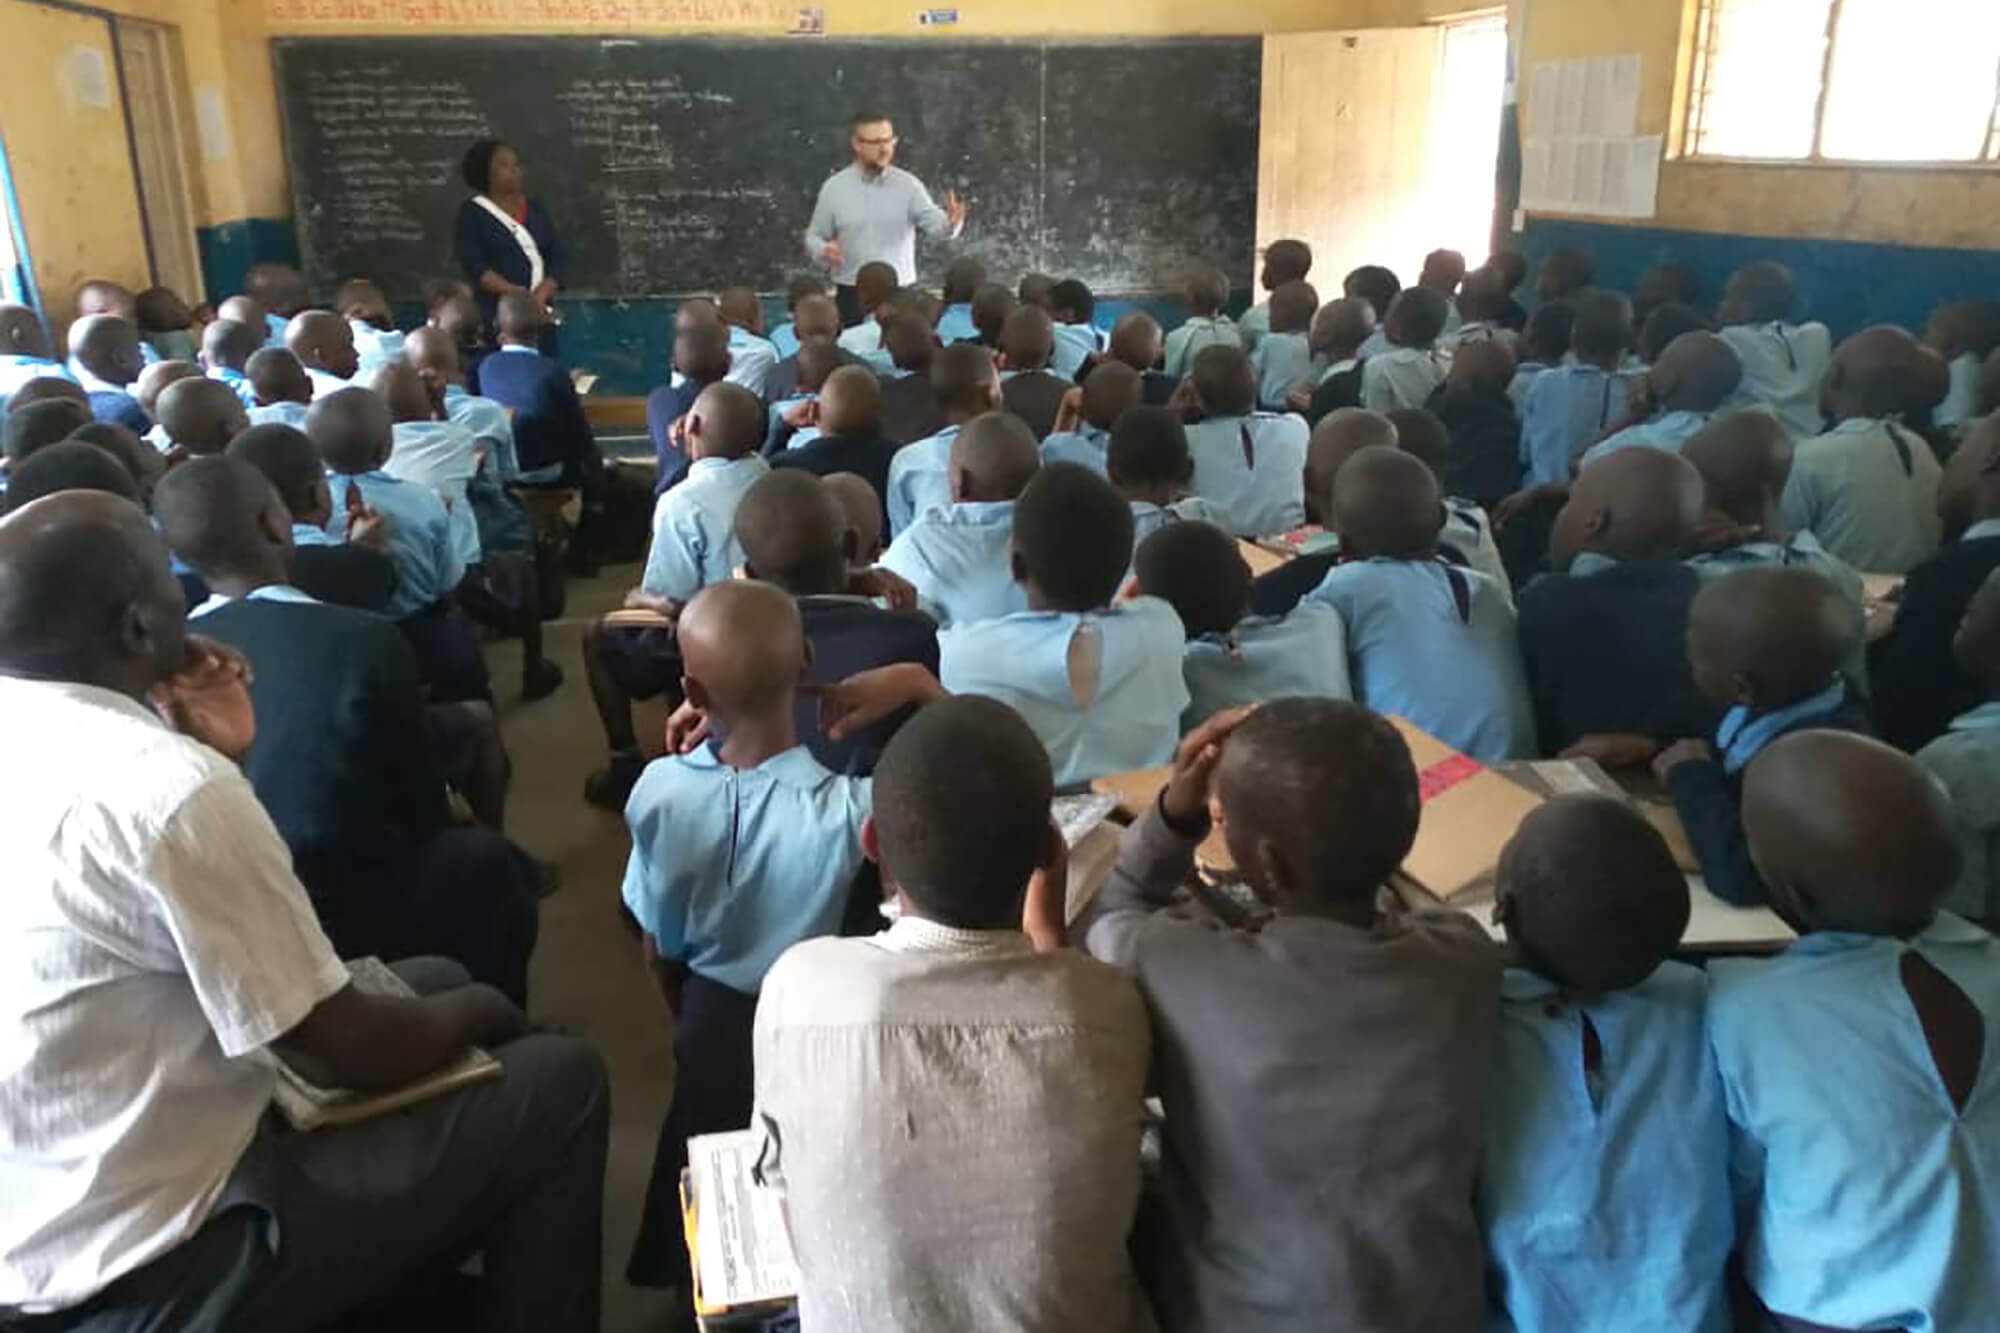 A person standing in front of a blackboard teaching a large class of African children.